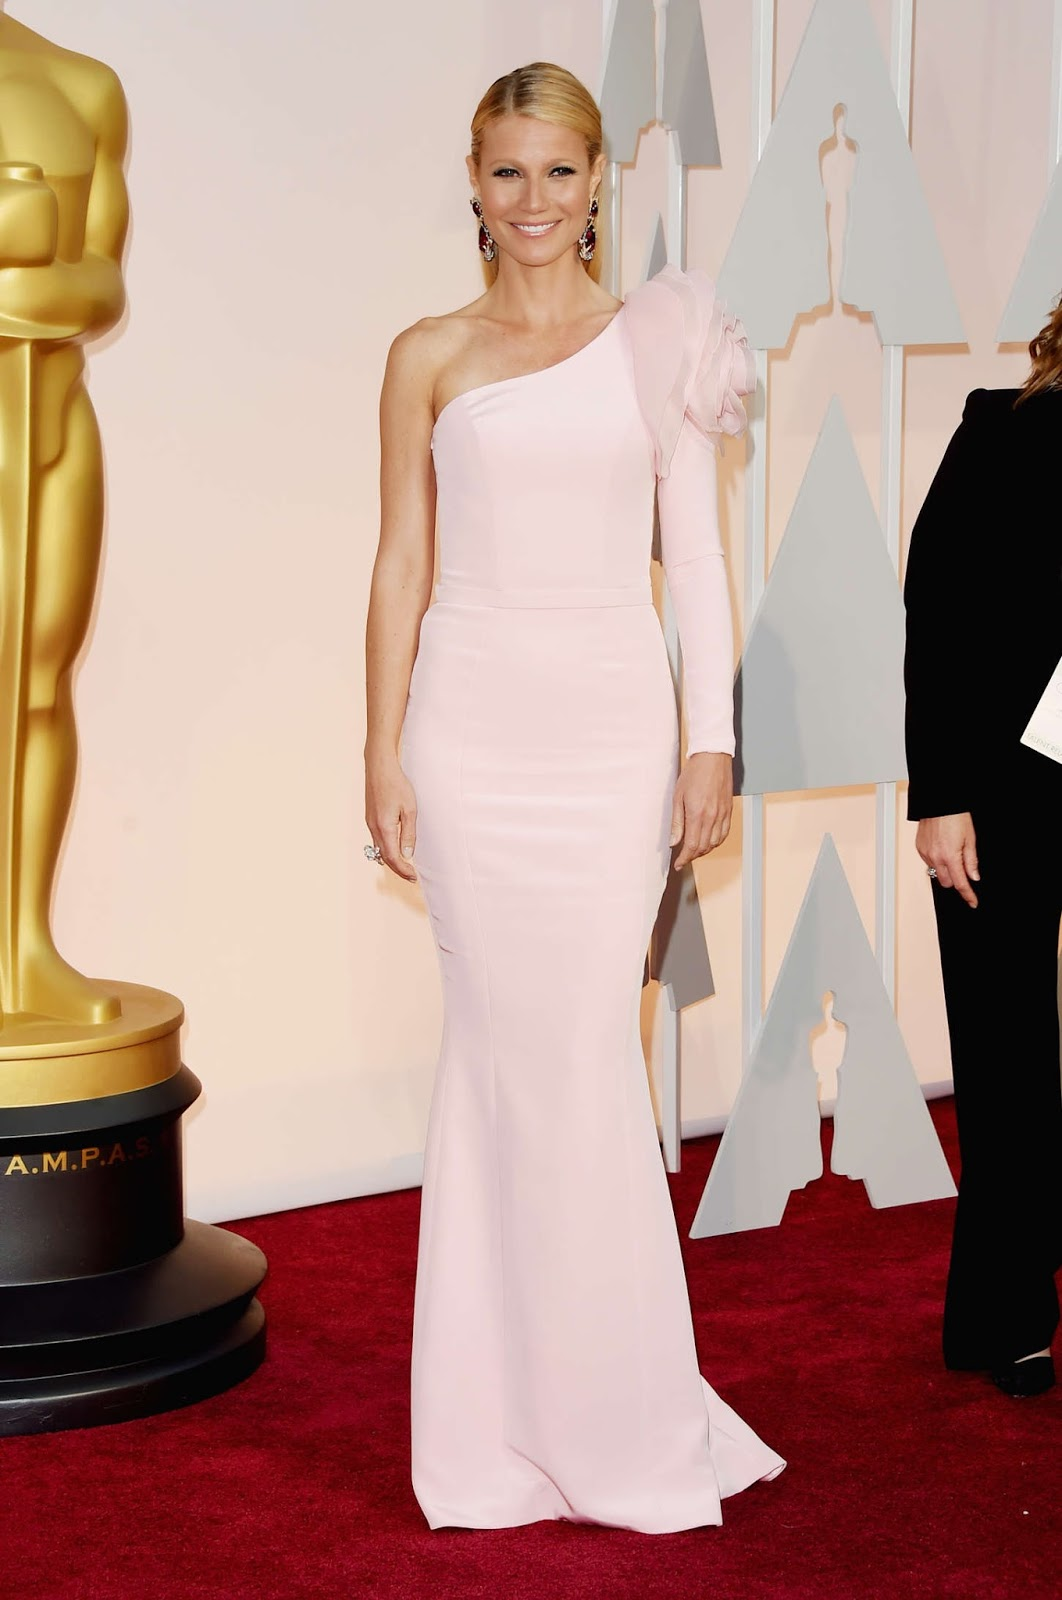 Gwyneth Paltrow is gorgeous in a pale pink gown at the 2015 Oscars in Hollywood